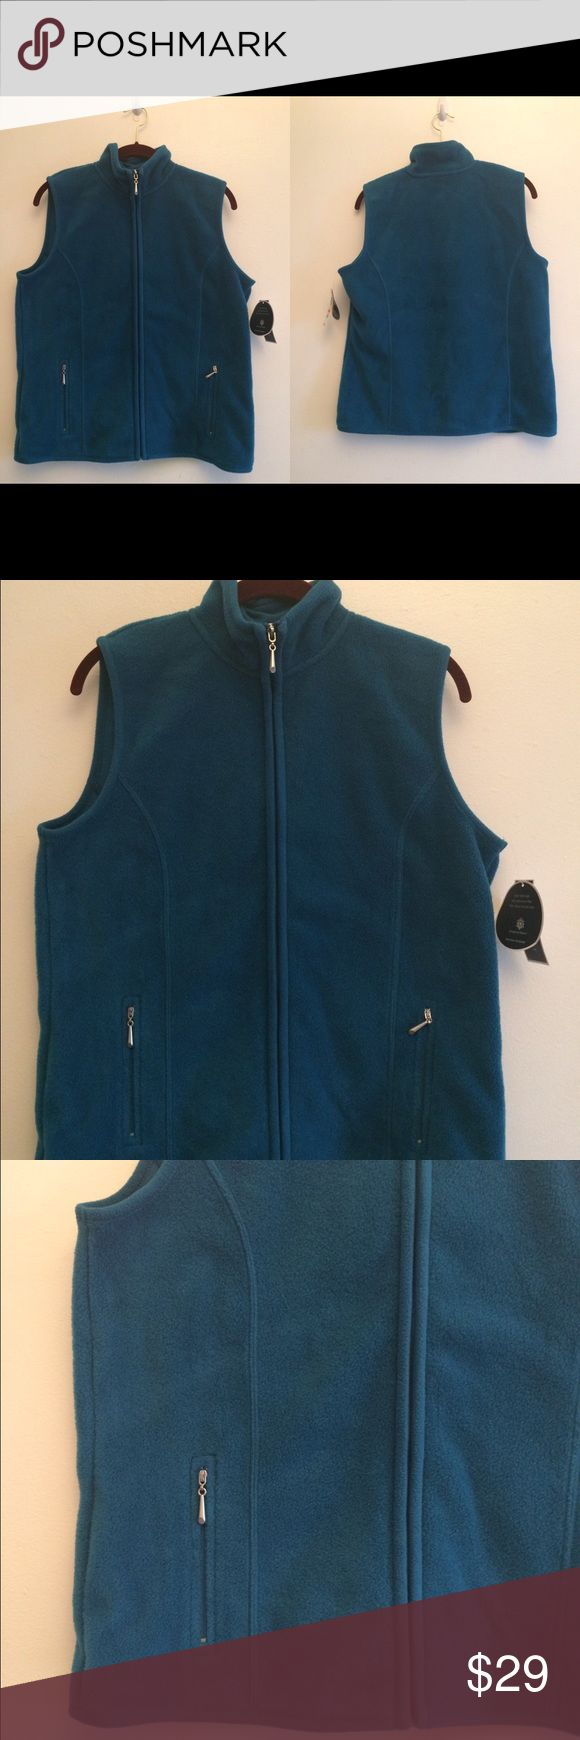 "KAREN SCOTT SPORT Womens  Fleece Jacket S KAREN SCOTT SPORT Womens Aqua Lake Zip Up Front Fleece Vest Jacket S. Bust - 42"" Length - 24.5"" Karen Scott Sweaters"